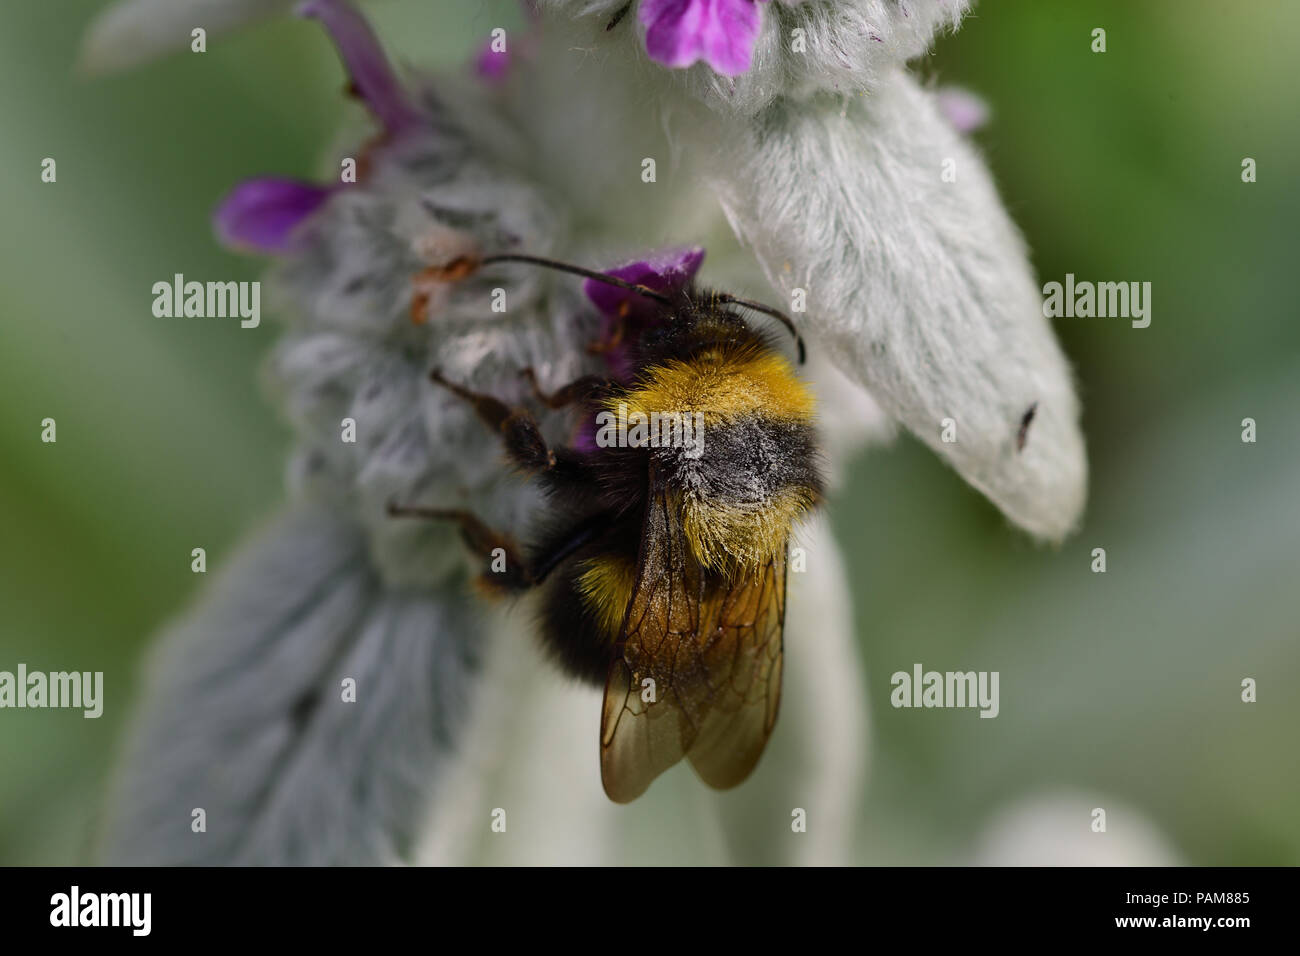 Macro shot of a bumble bee pollinating a woolly hedgenettle flower - Stock Image